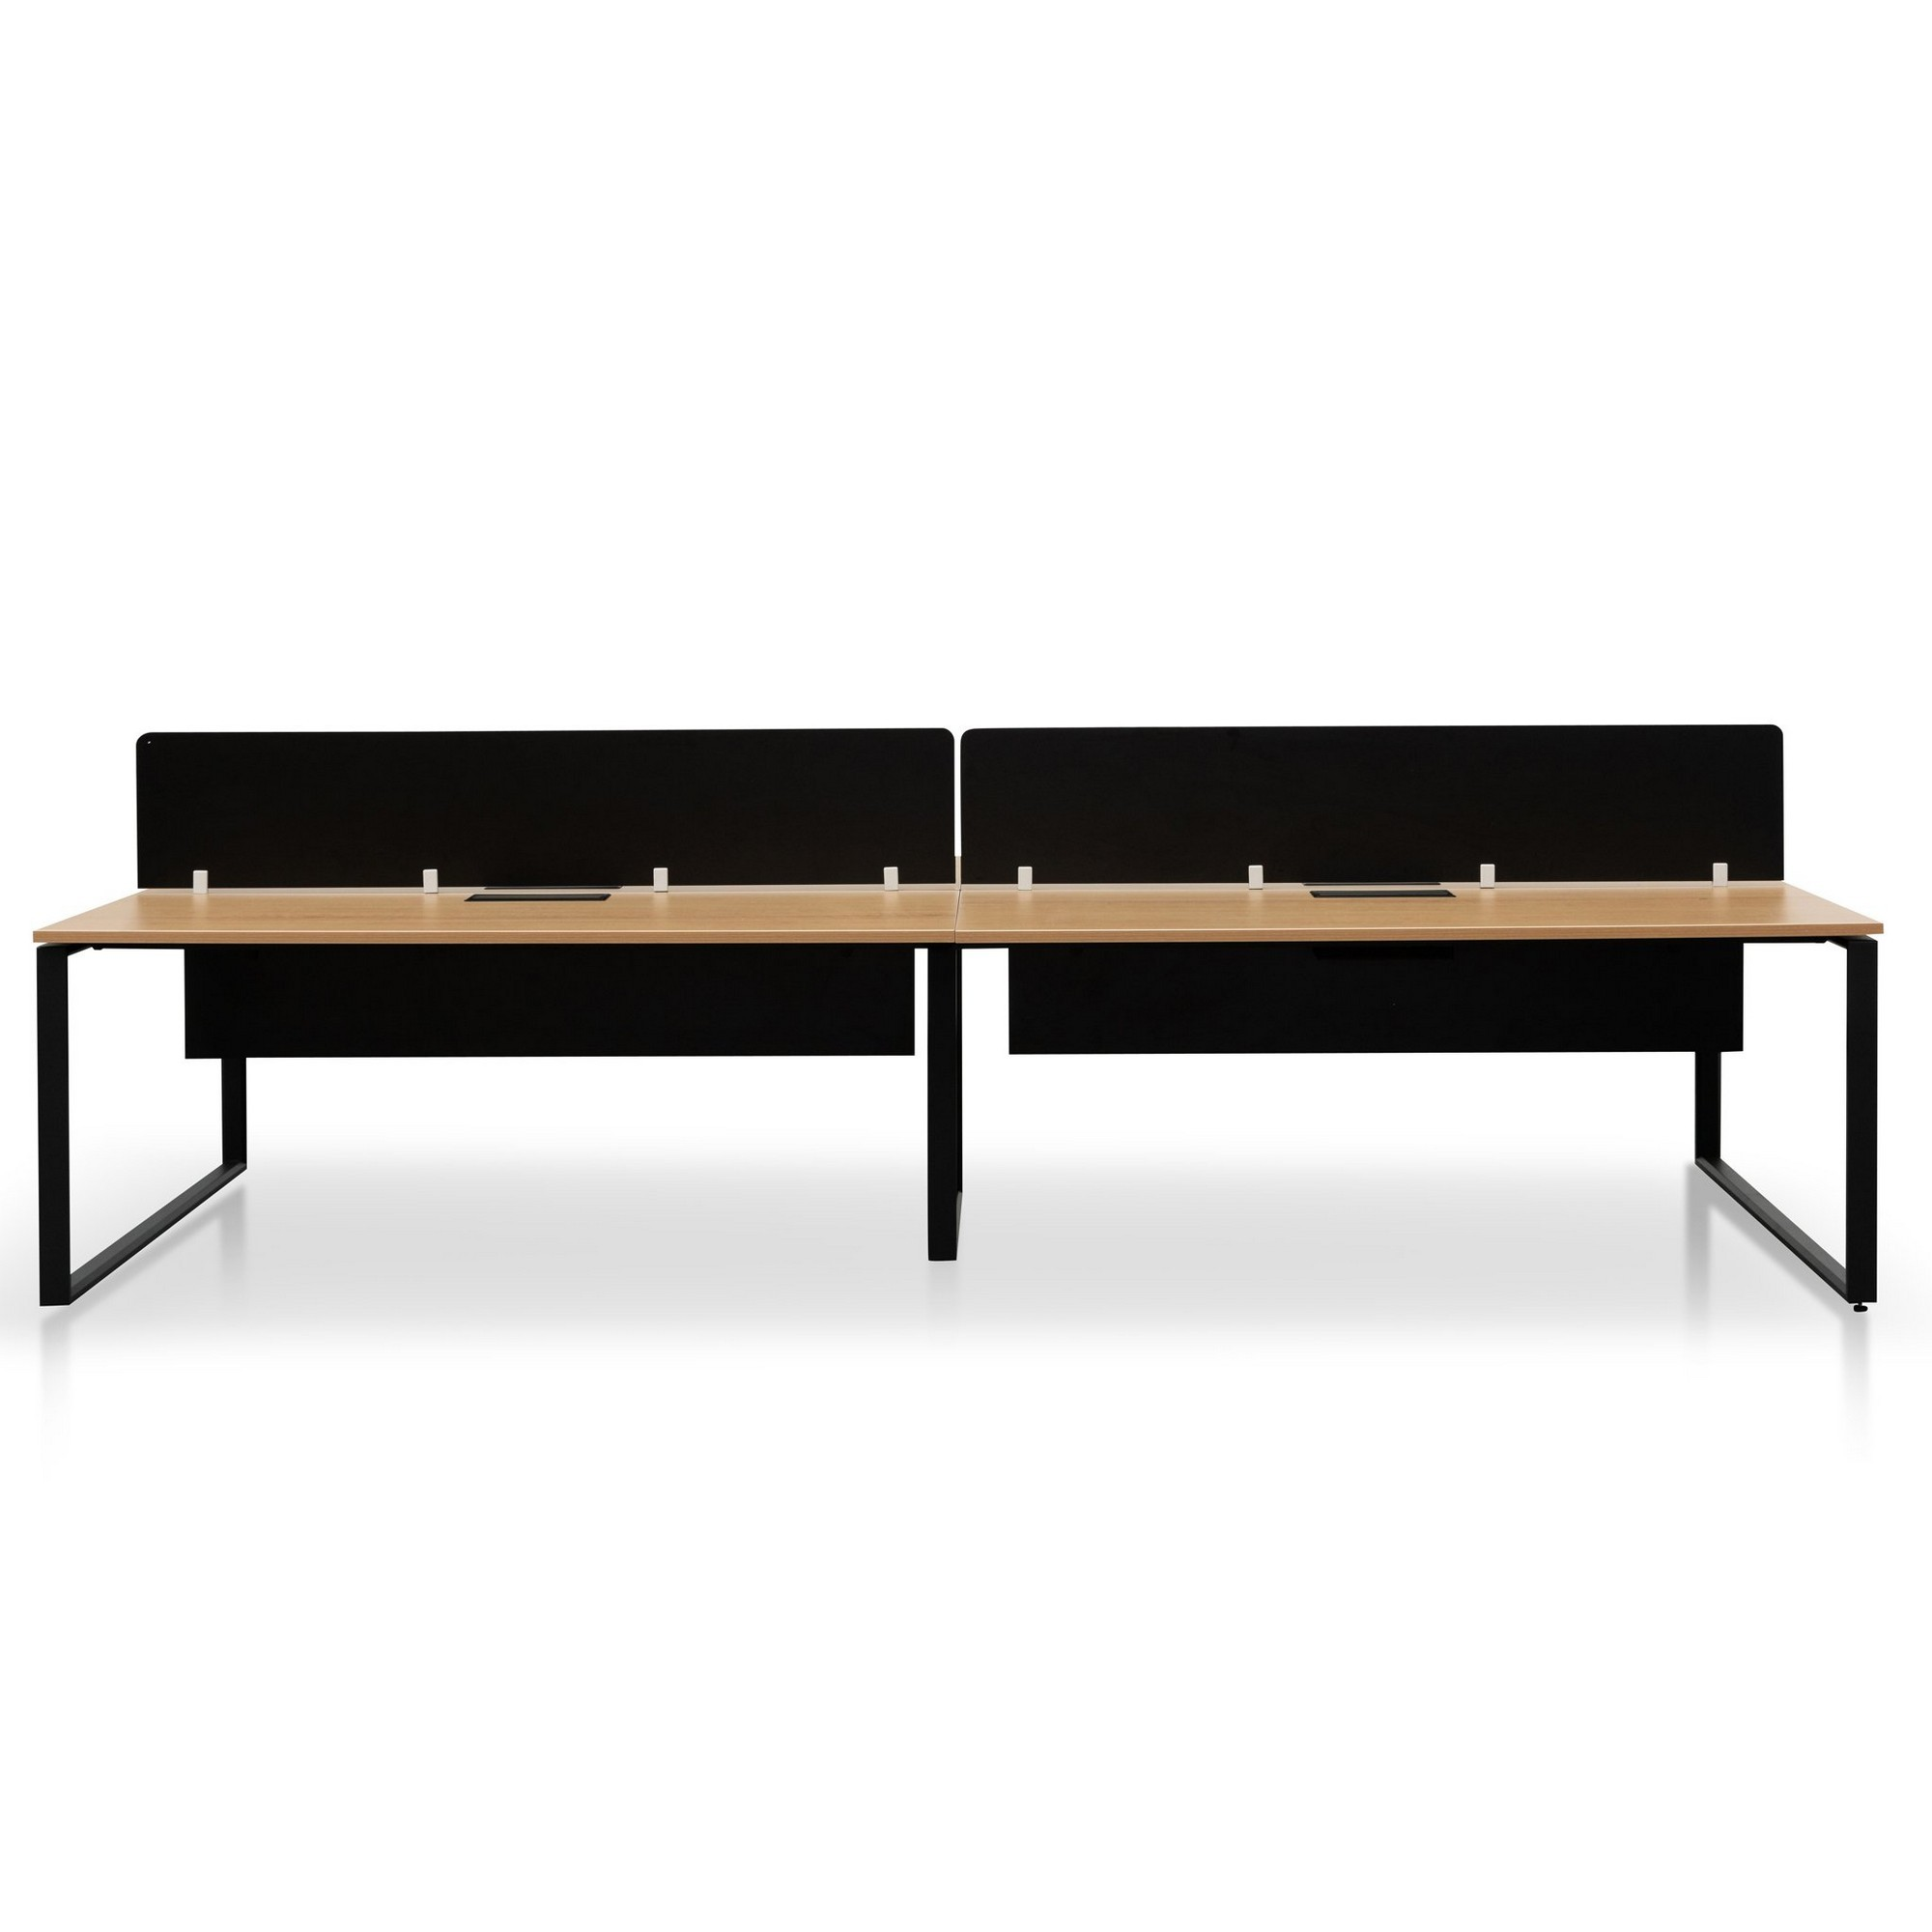 Lacasa Back-to-Back Workstation Desk with Black Screen, 4 Seats, 360cm, Natural / Black